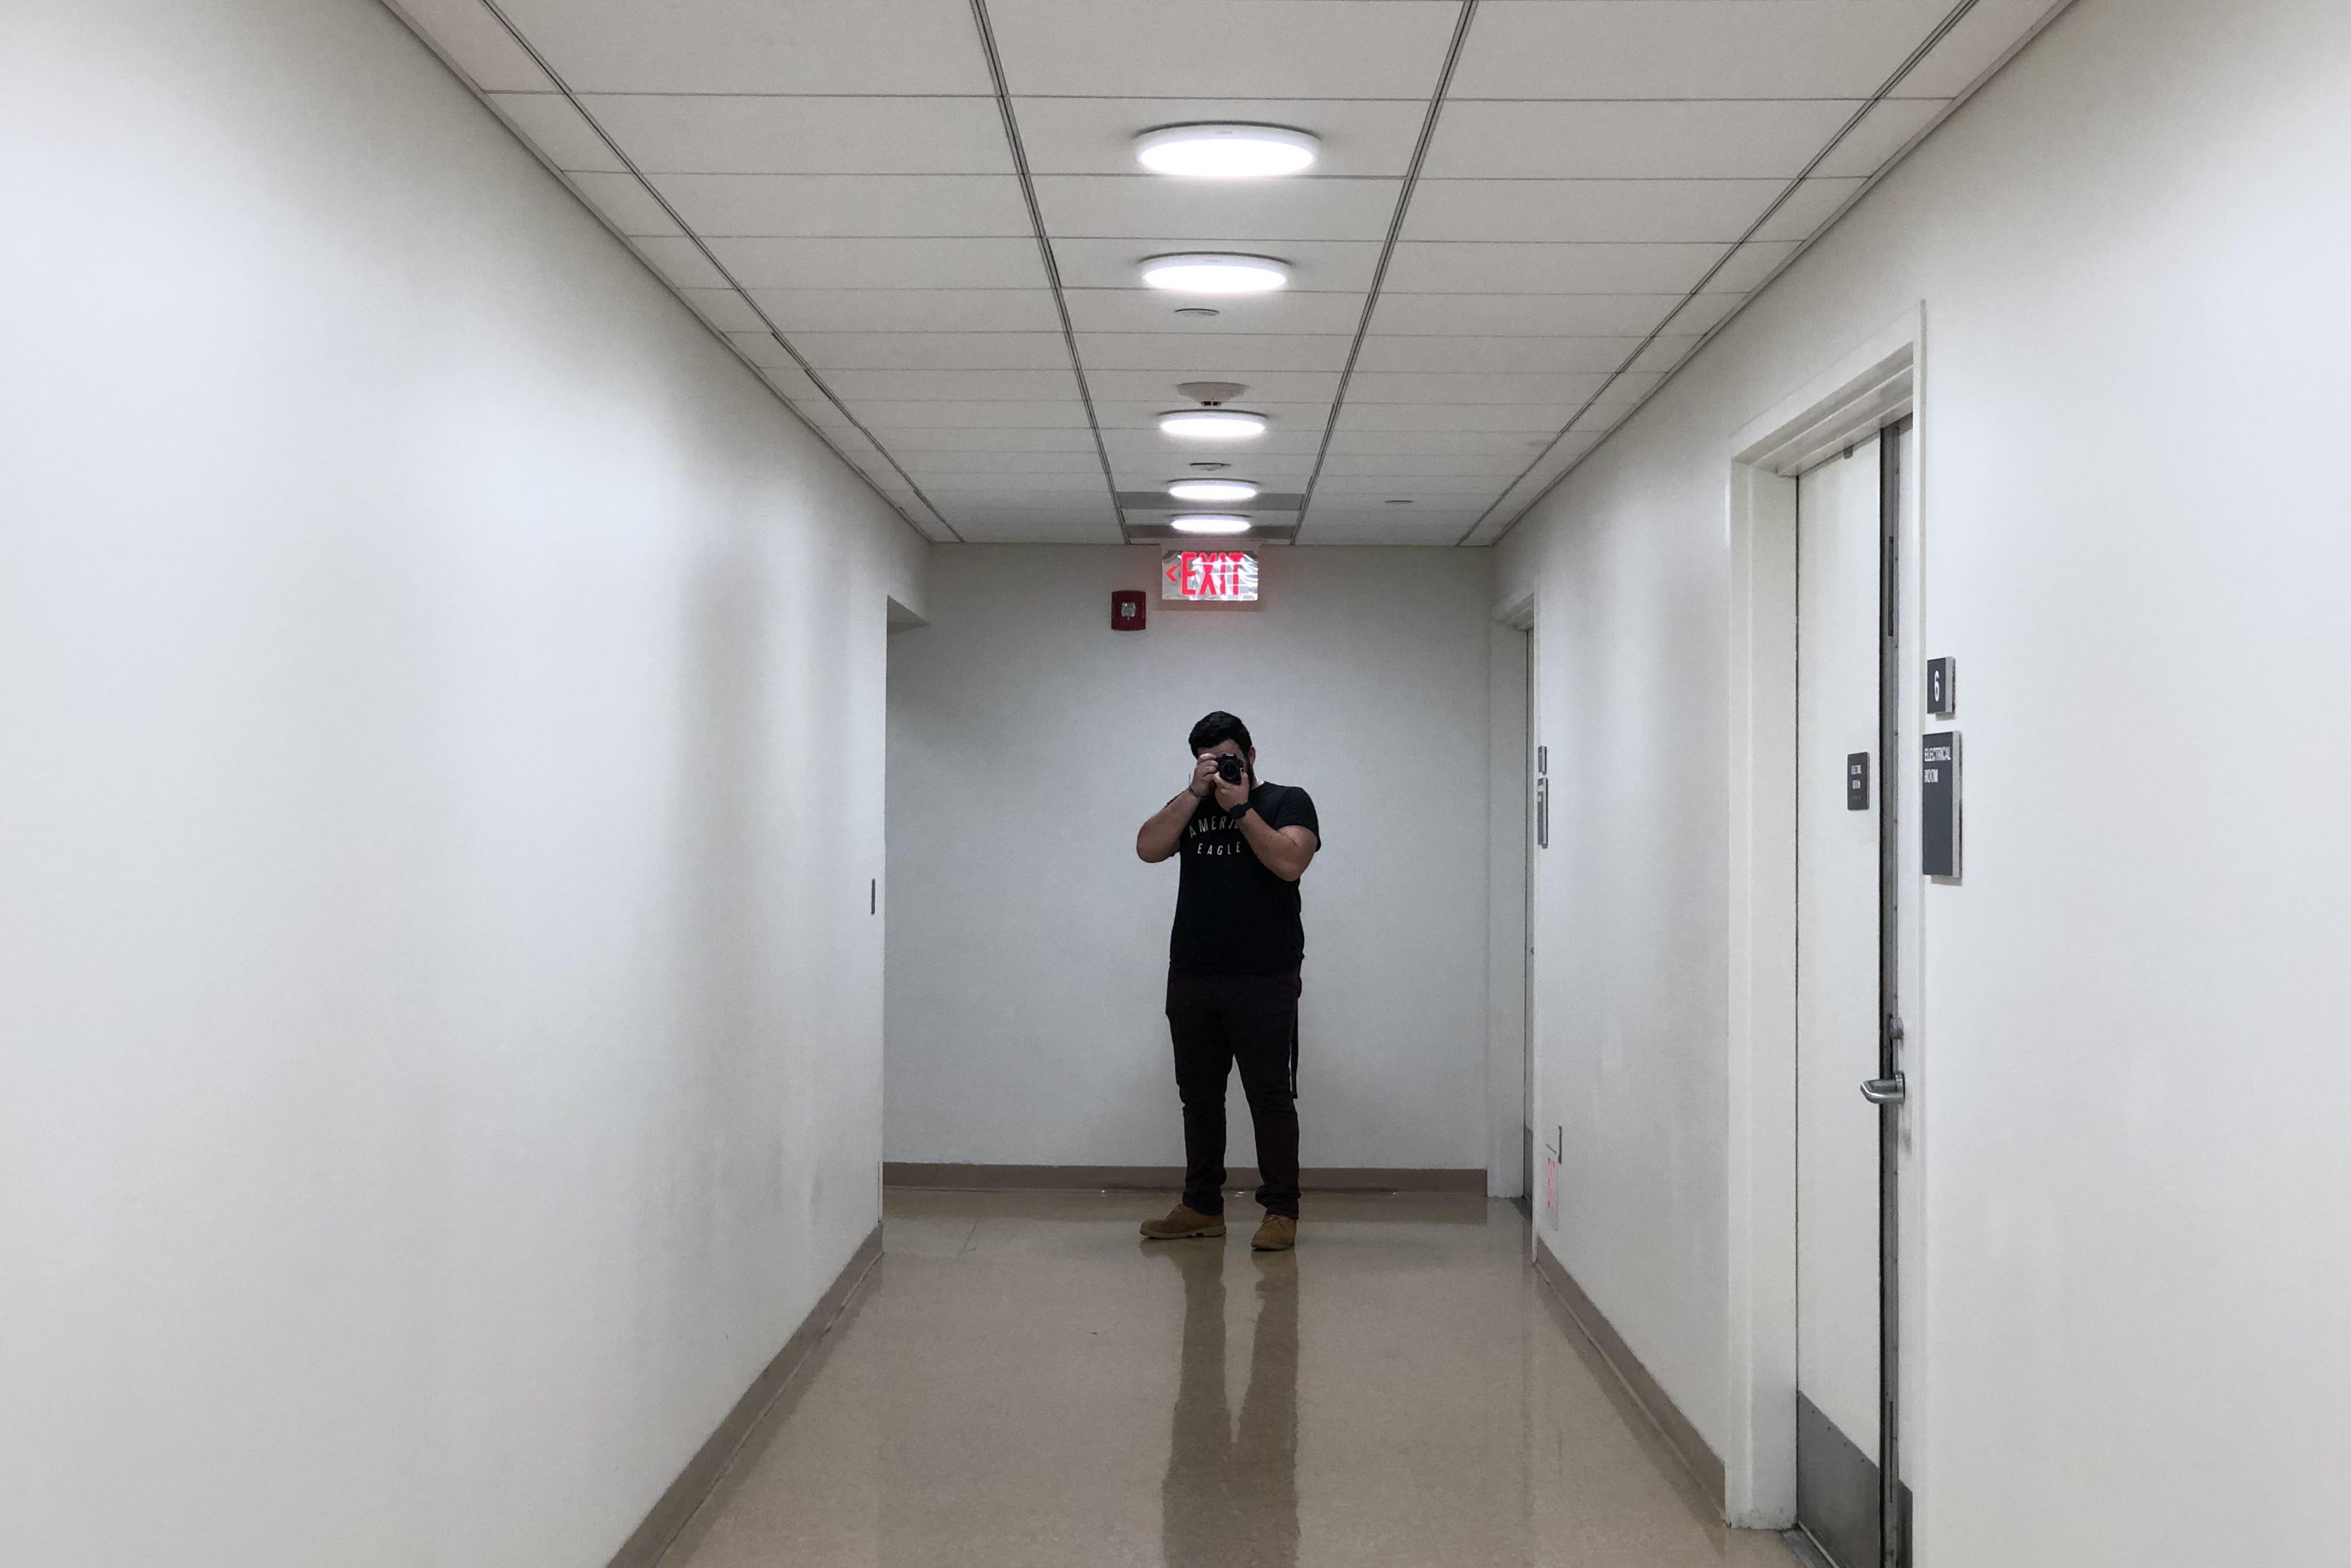 View of a long hallway with a student standing and holding a camera at the end.